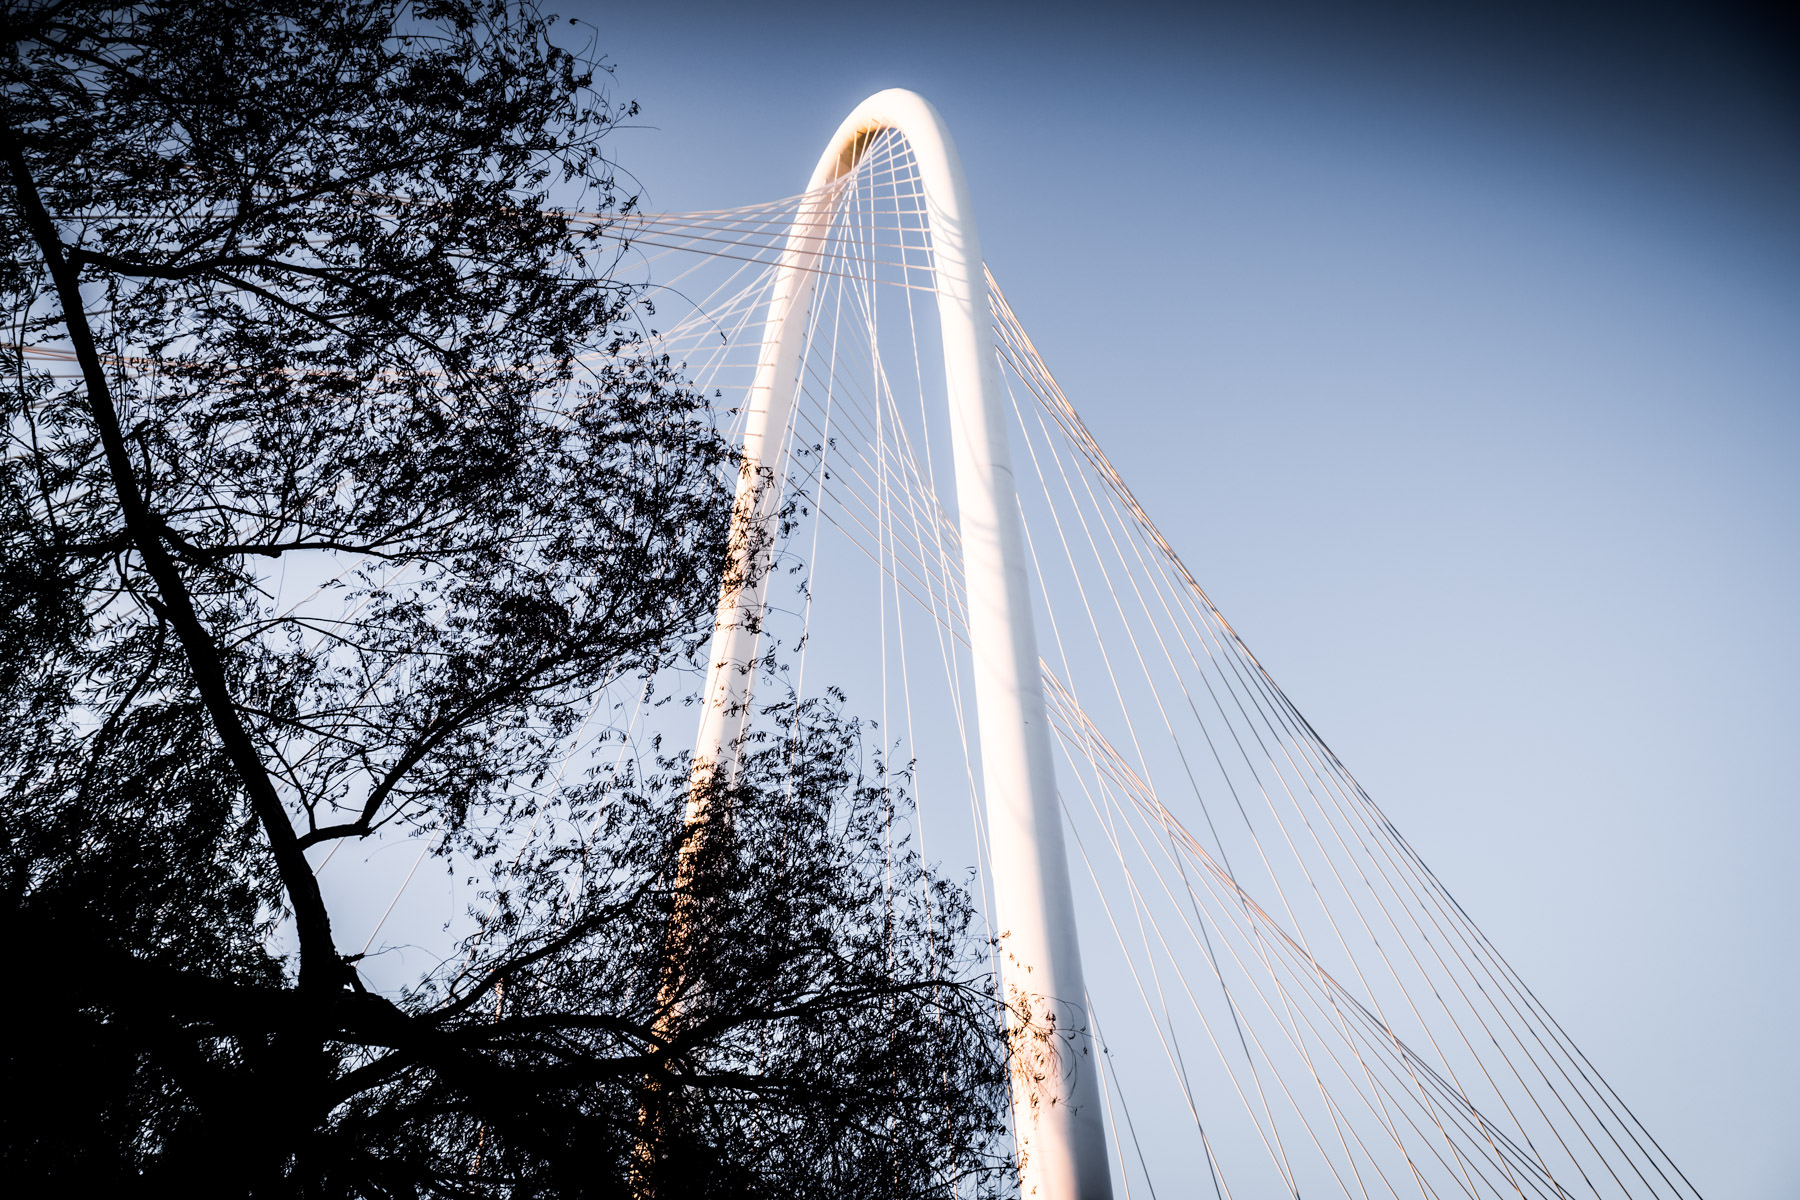 The Santiago Calatrava-designed Margaret Hunt Hill Bridge's arch rises into the sky over Dallas.